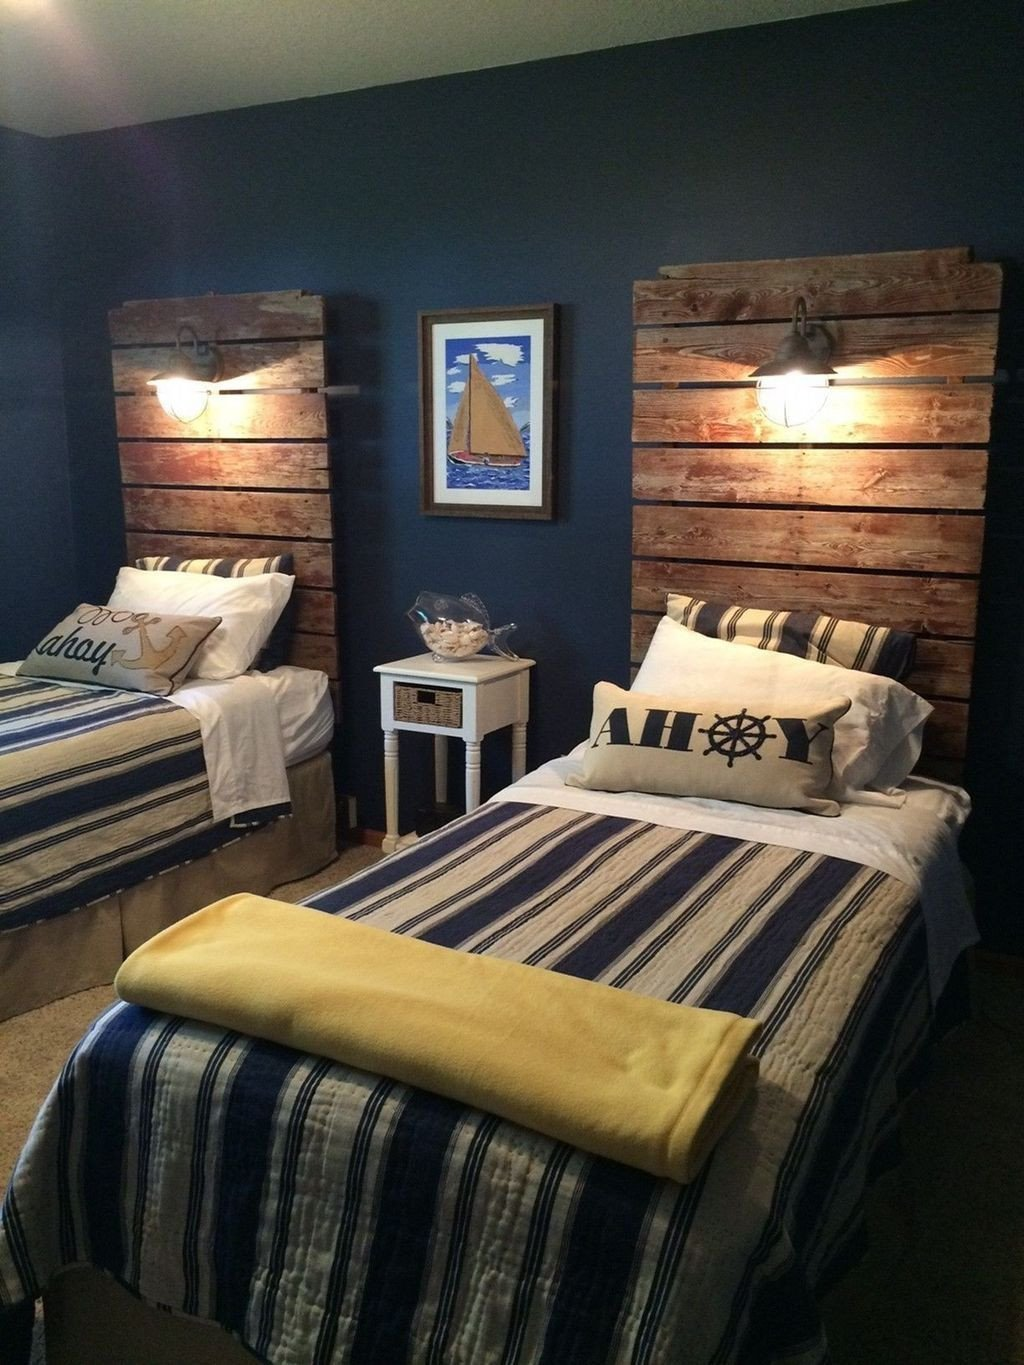 Bedroom Set for Boy Lovely 40 Brilliant Bedroom Decoration Ideas for Your Boy